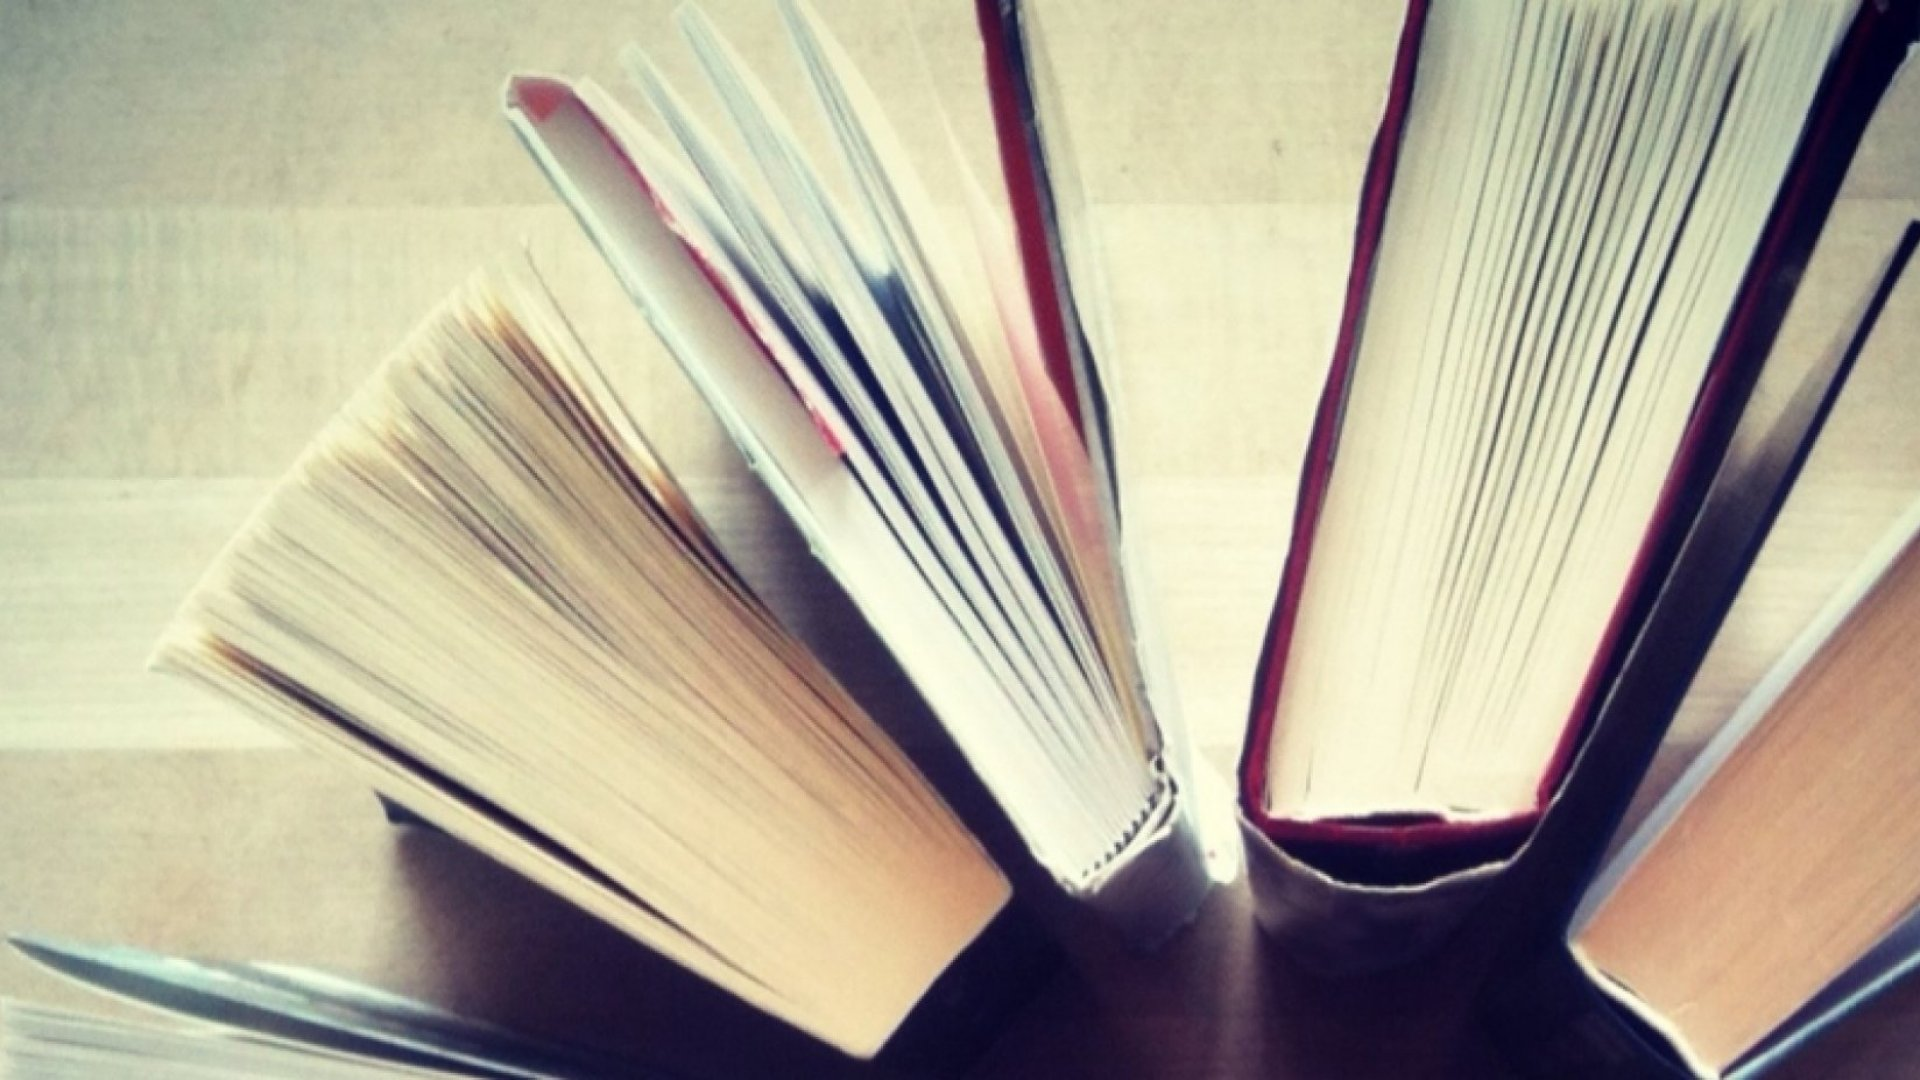 7 Reasons Now is the Time to Write a Book